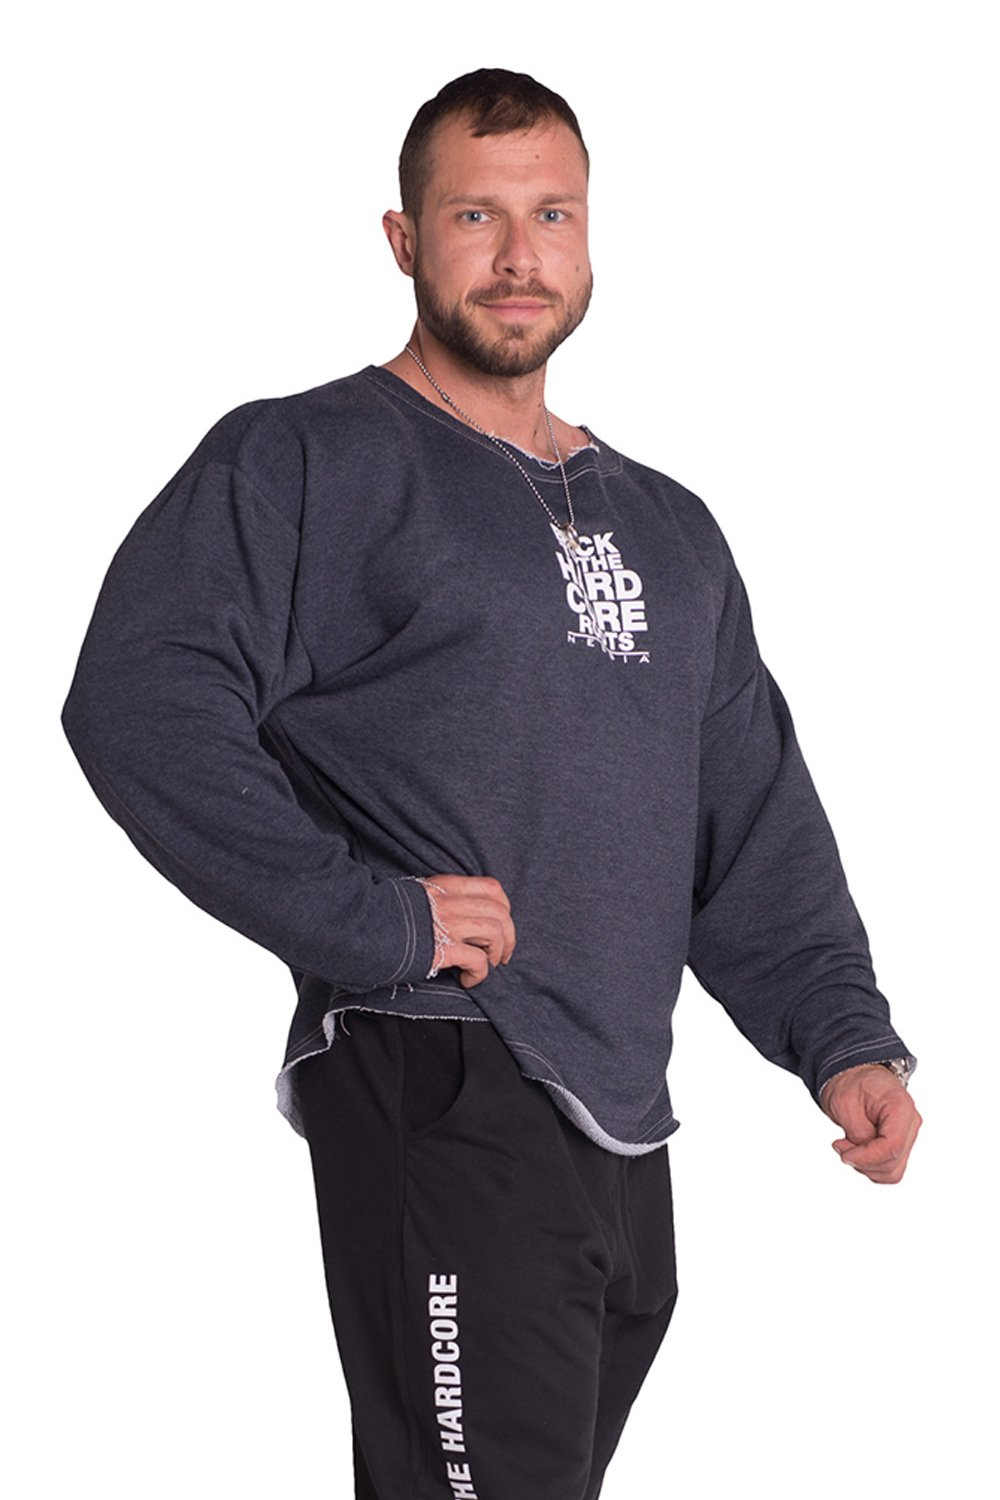 NEBBIA OverGrößed Top 342 Herren Fitness Long Sleeve T-Shirt